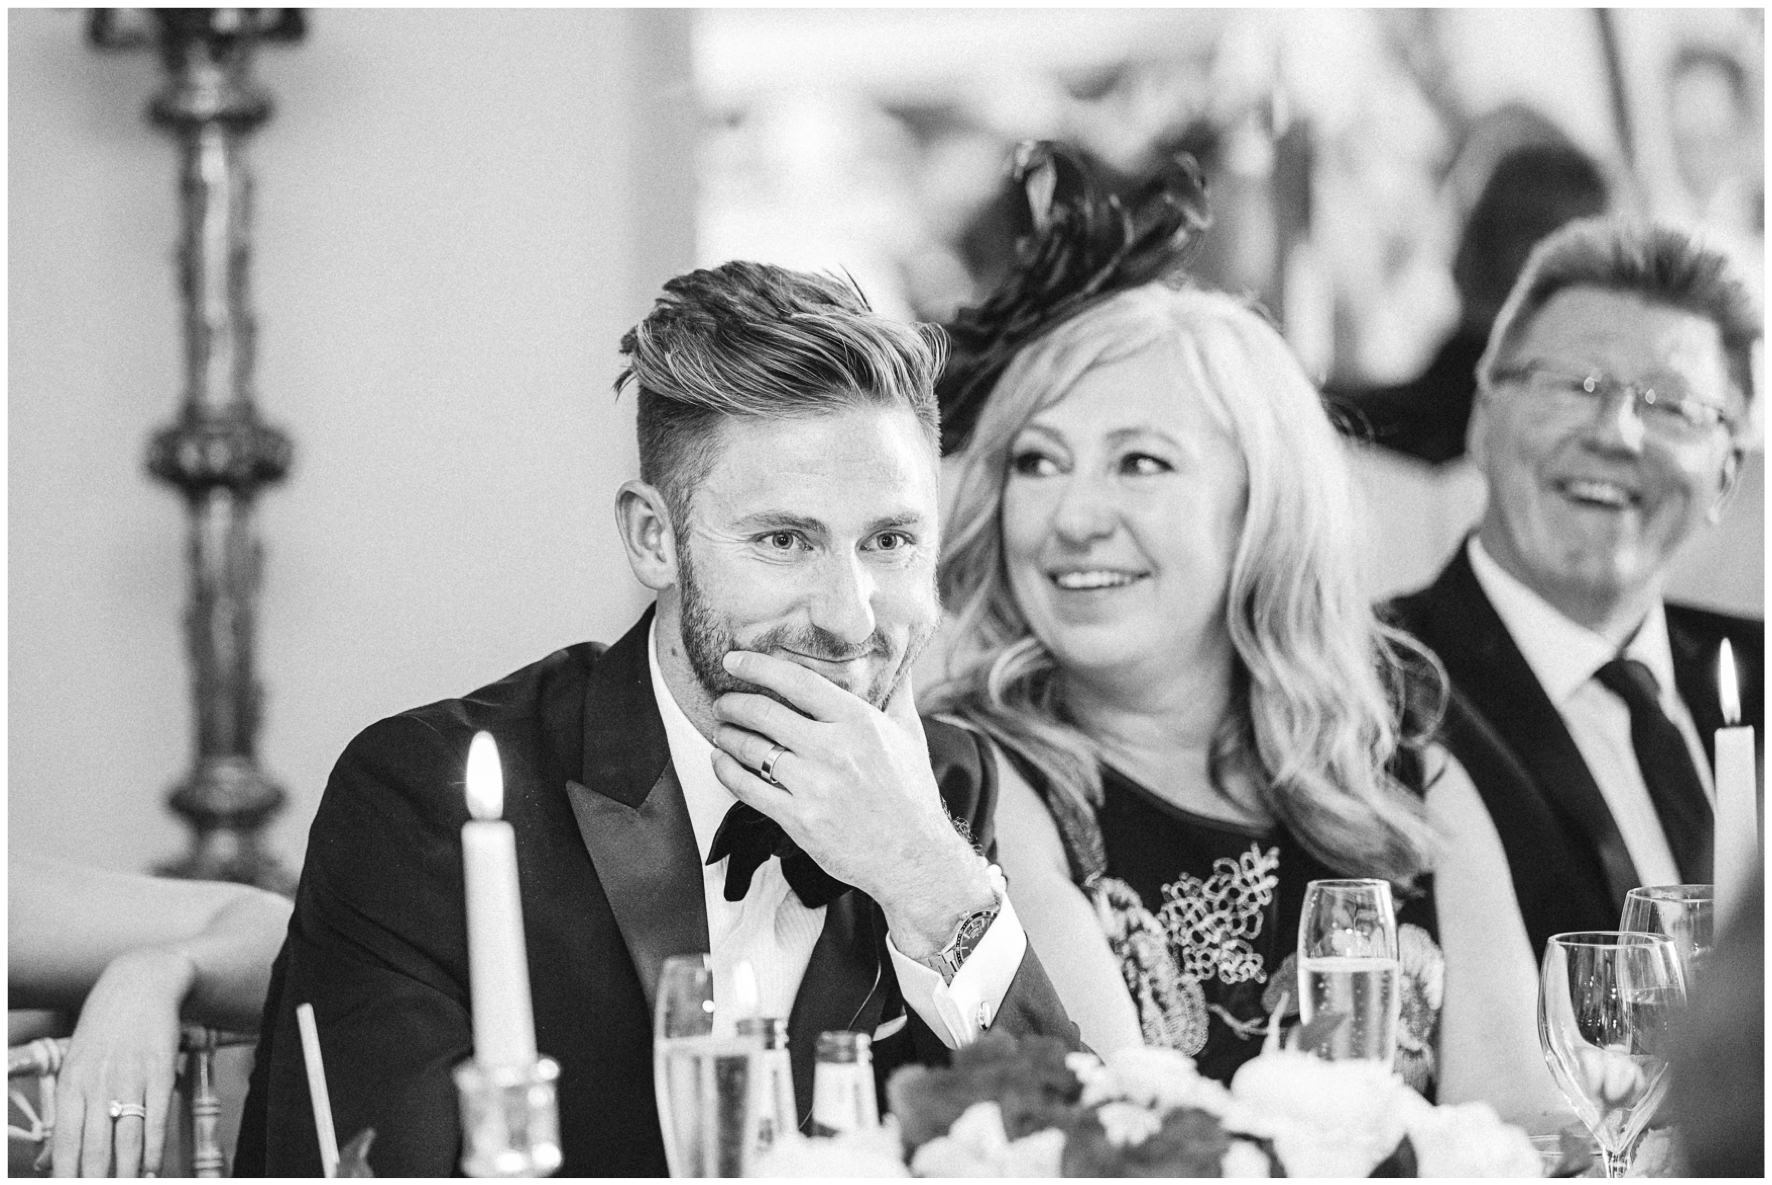 Lucy Davenport Photography, Aynhoe Park, Oxfordshire, wedding venue, Rock My Wedding, speeches, groom